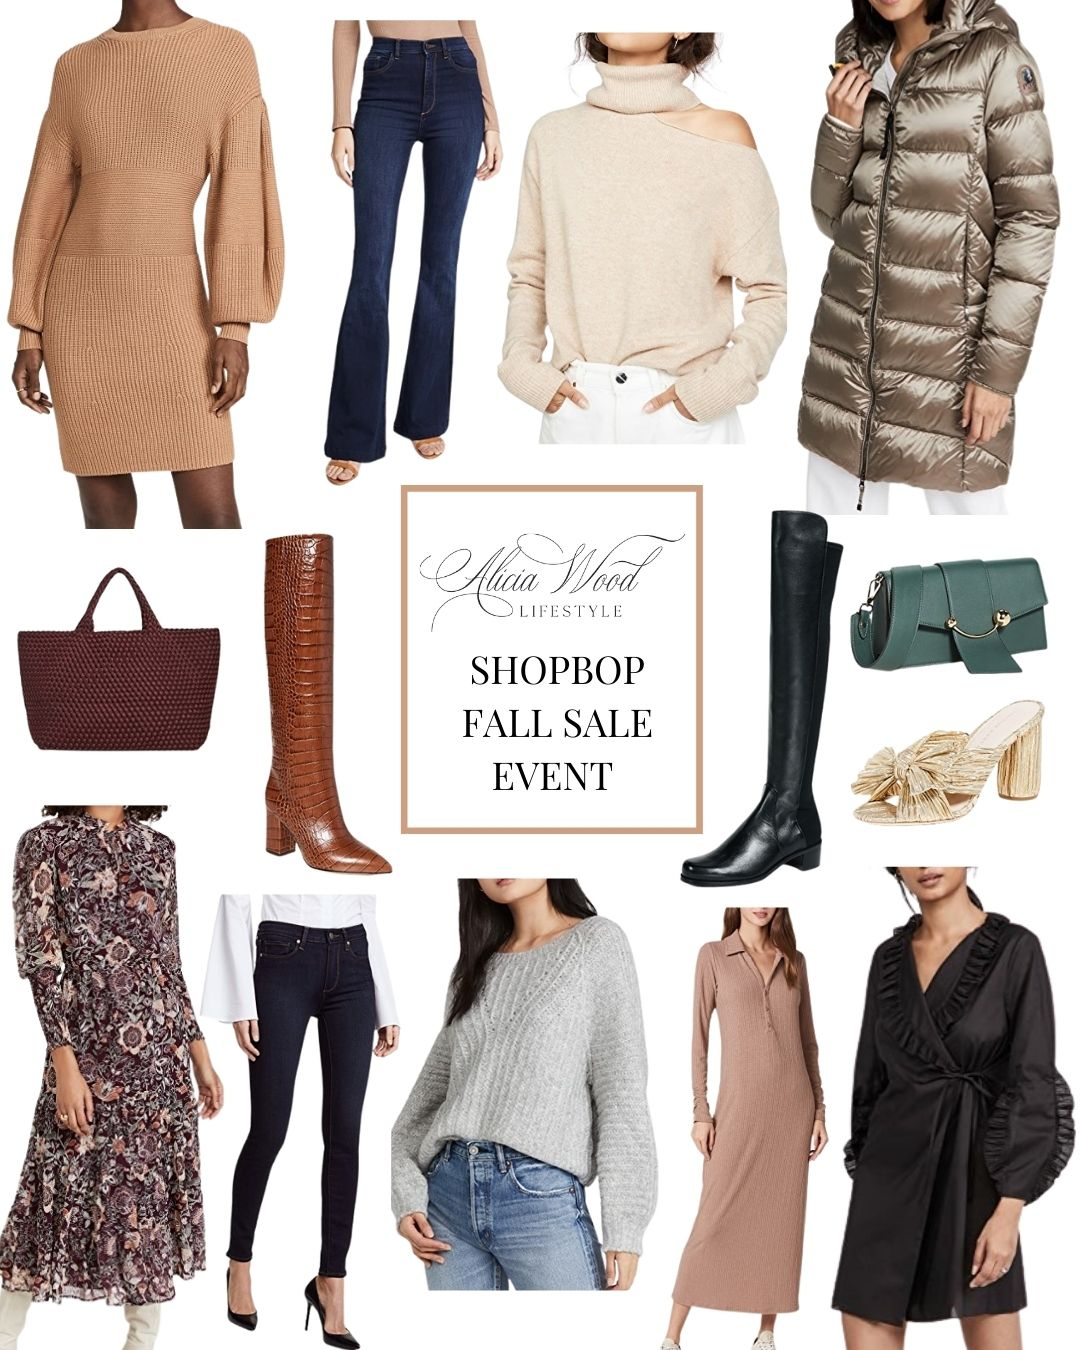 Shopbop Fall Event | Wear Now Styles Up To 25% off